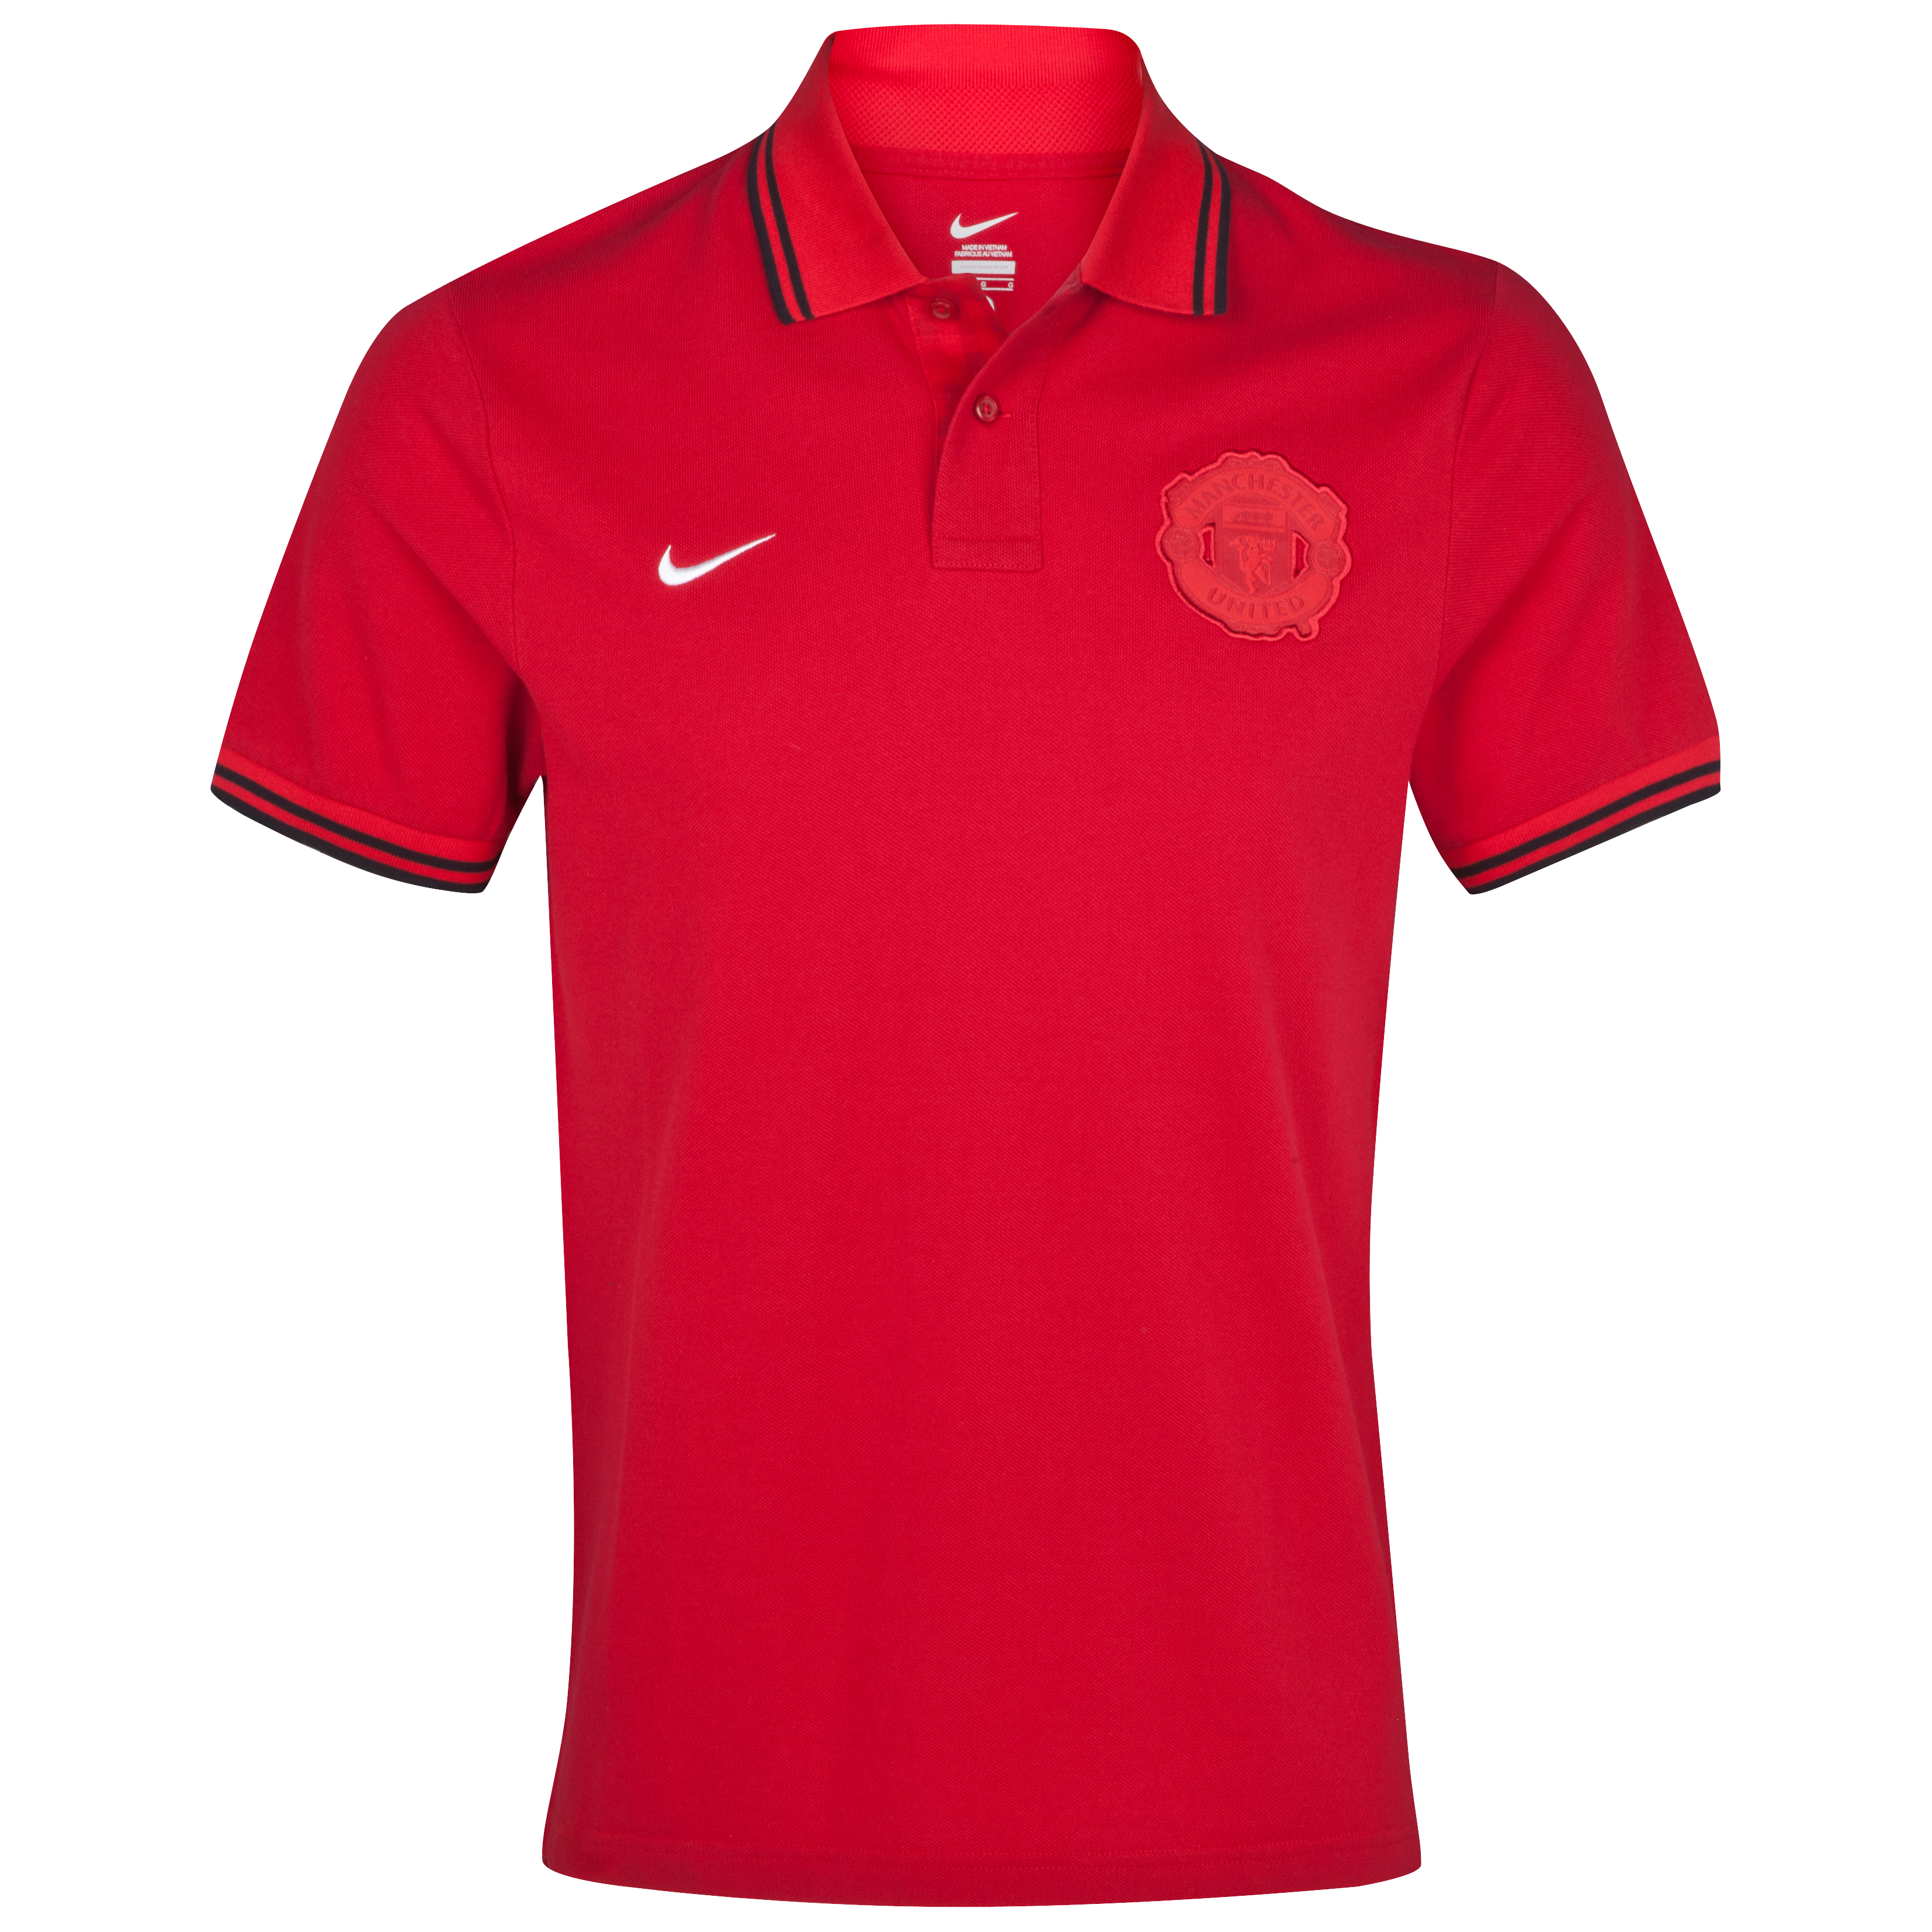 Manchester United Authentic Grandslam Polo - Gym Red/University Red/Black/White